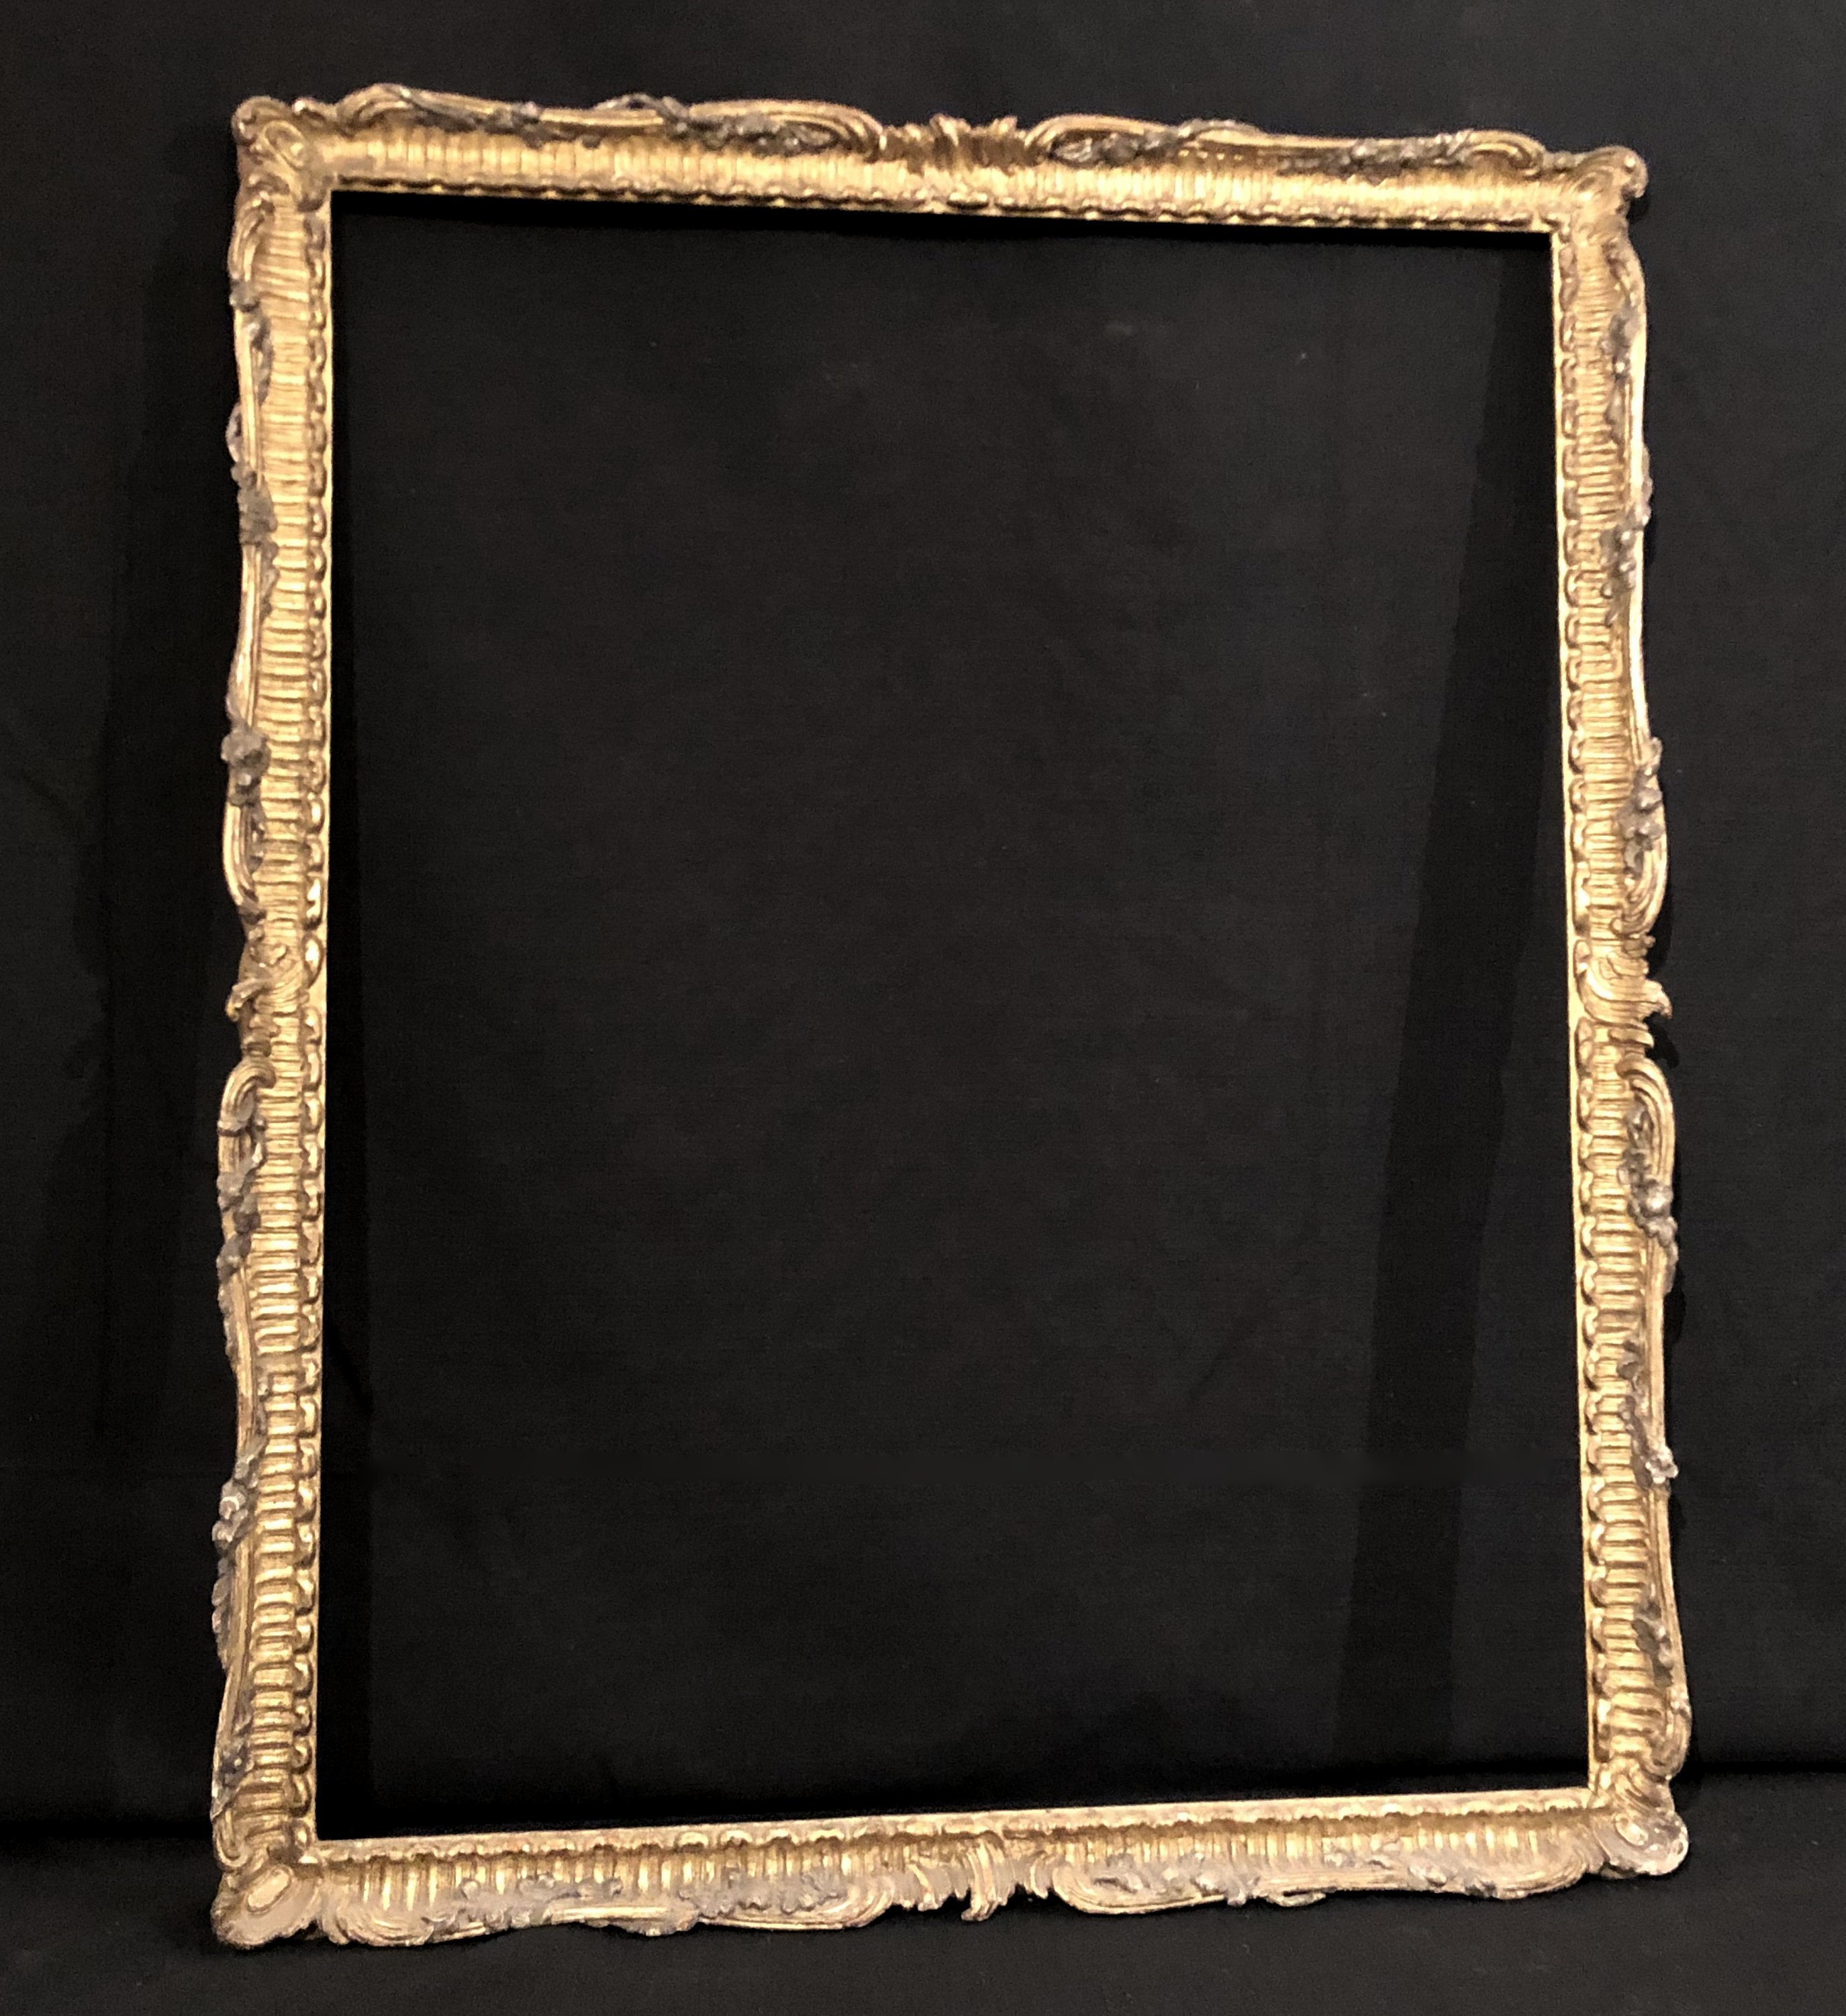 Rococo frame - Contact for price